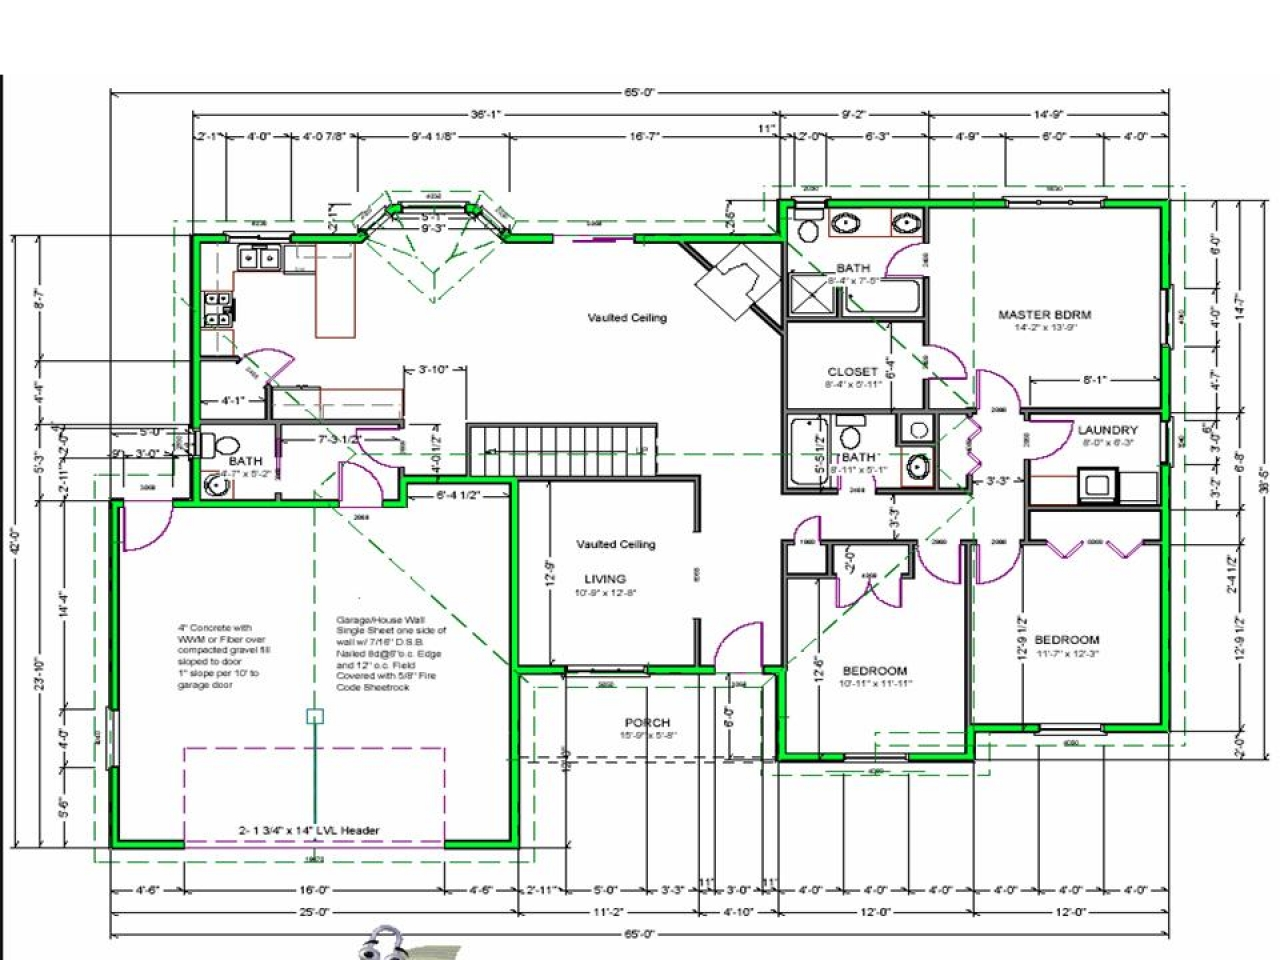 Floor Plan Drawing at GetDrawings – Build My Own House Floor Plans